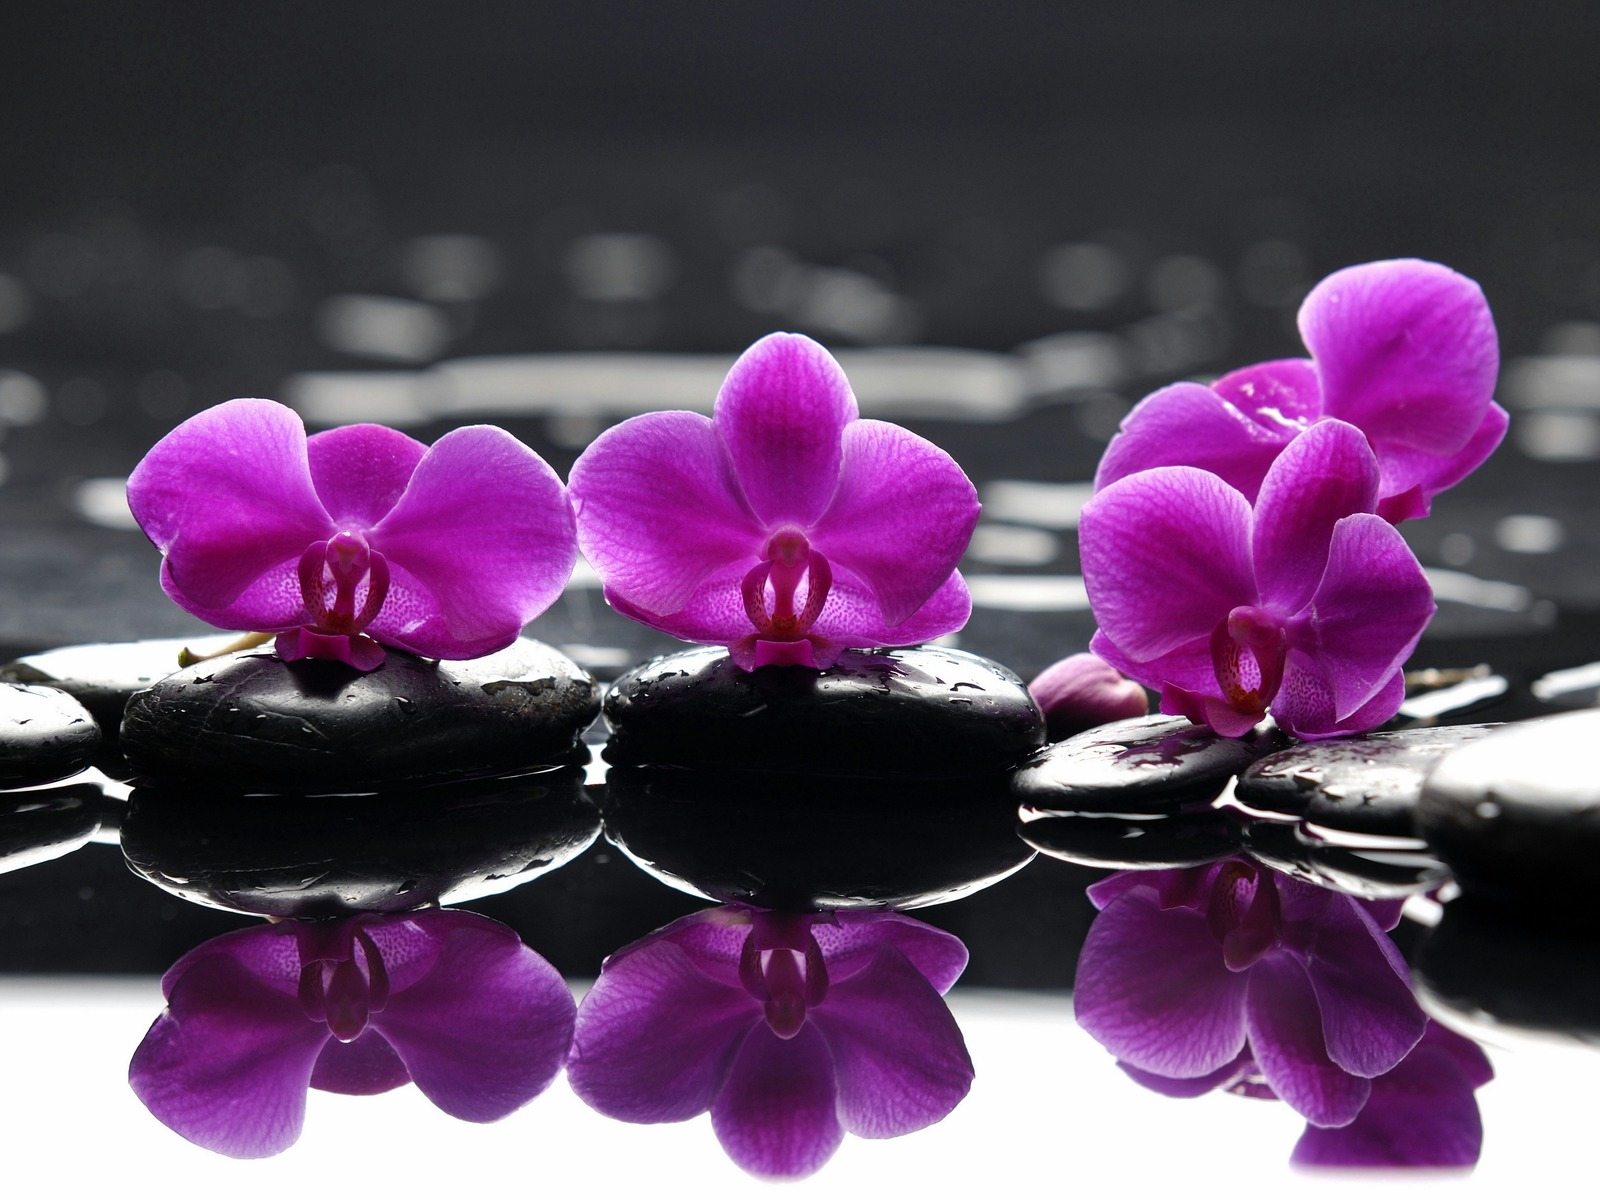 spa wallpaper purple flowers spa stones purple flower droplets 1600x1200